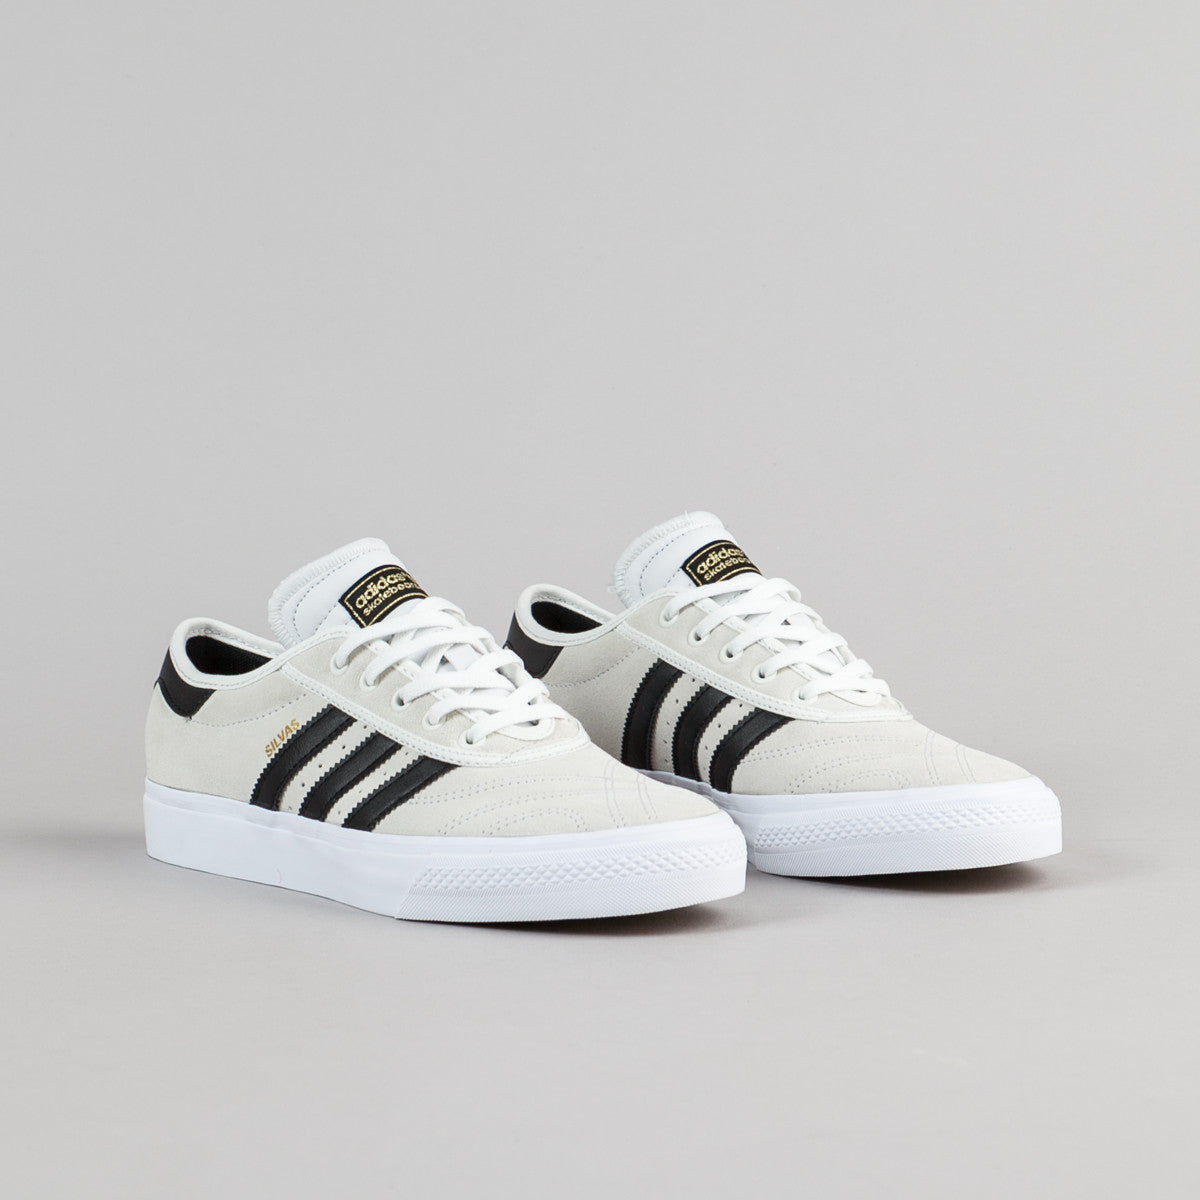 Adidas Adi-Ease Premiere ADV Shoes - White / Core Black / Gum